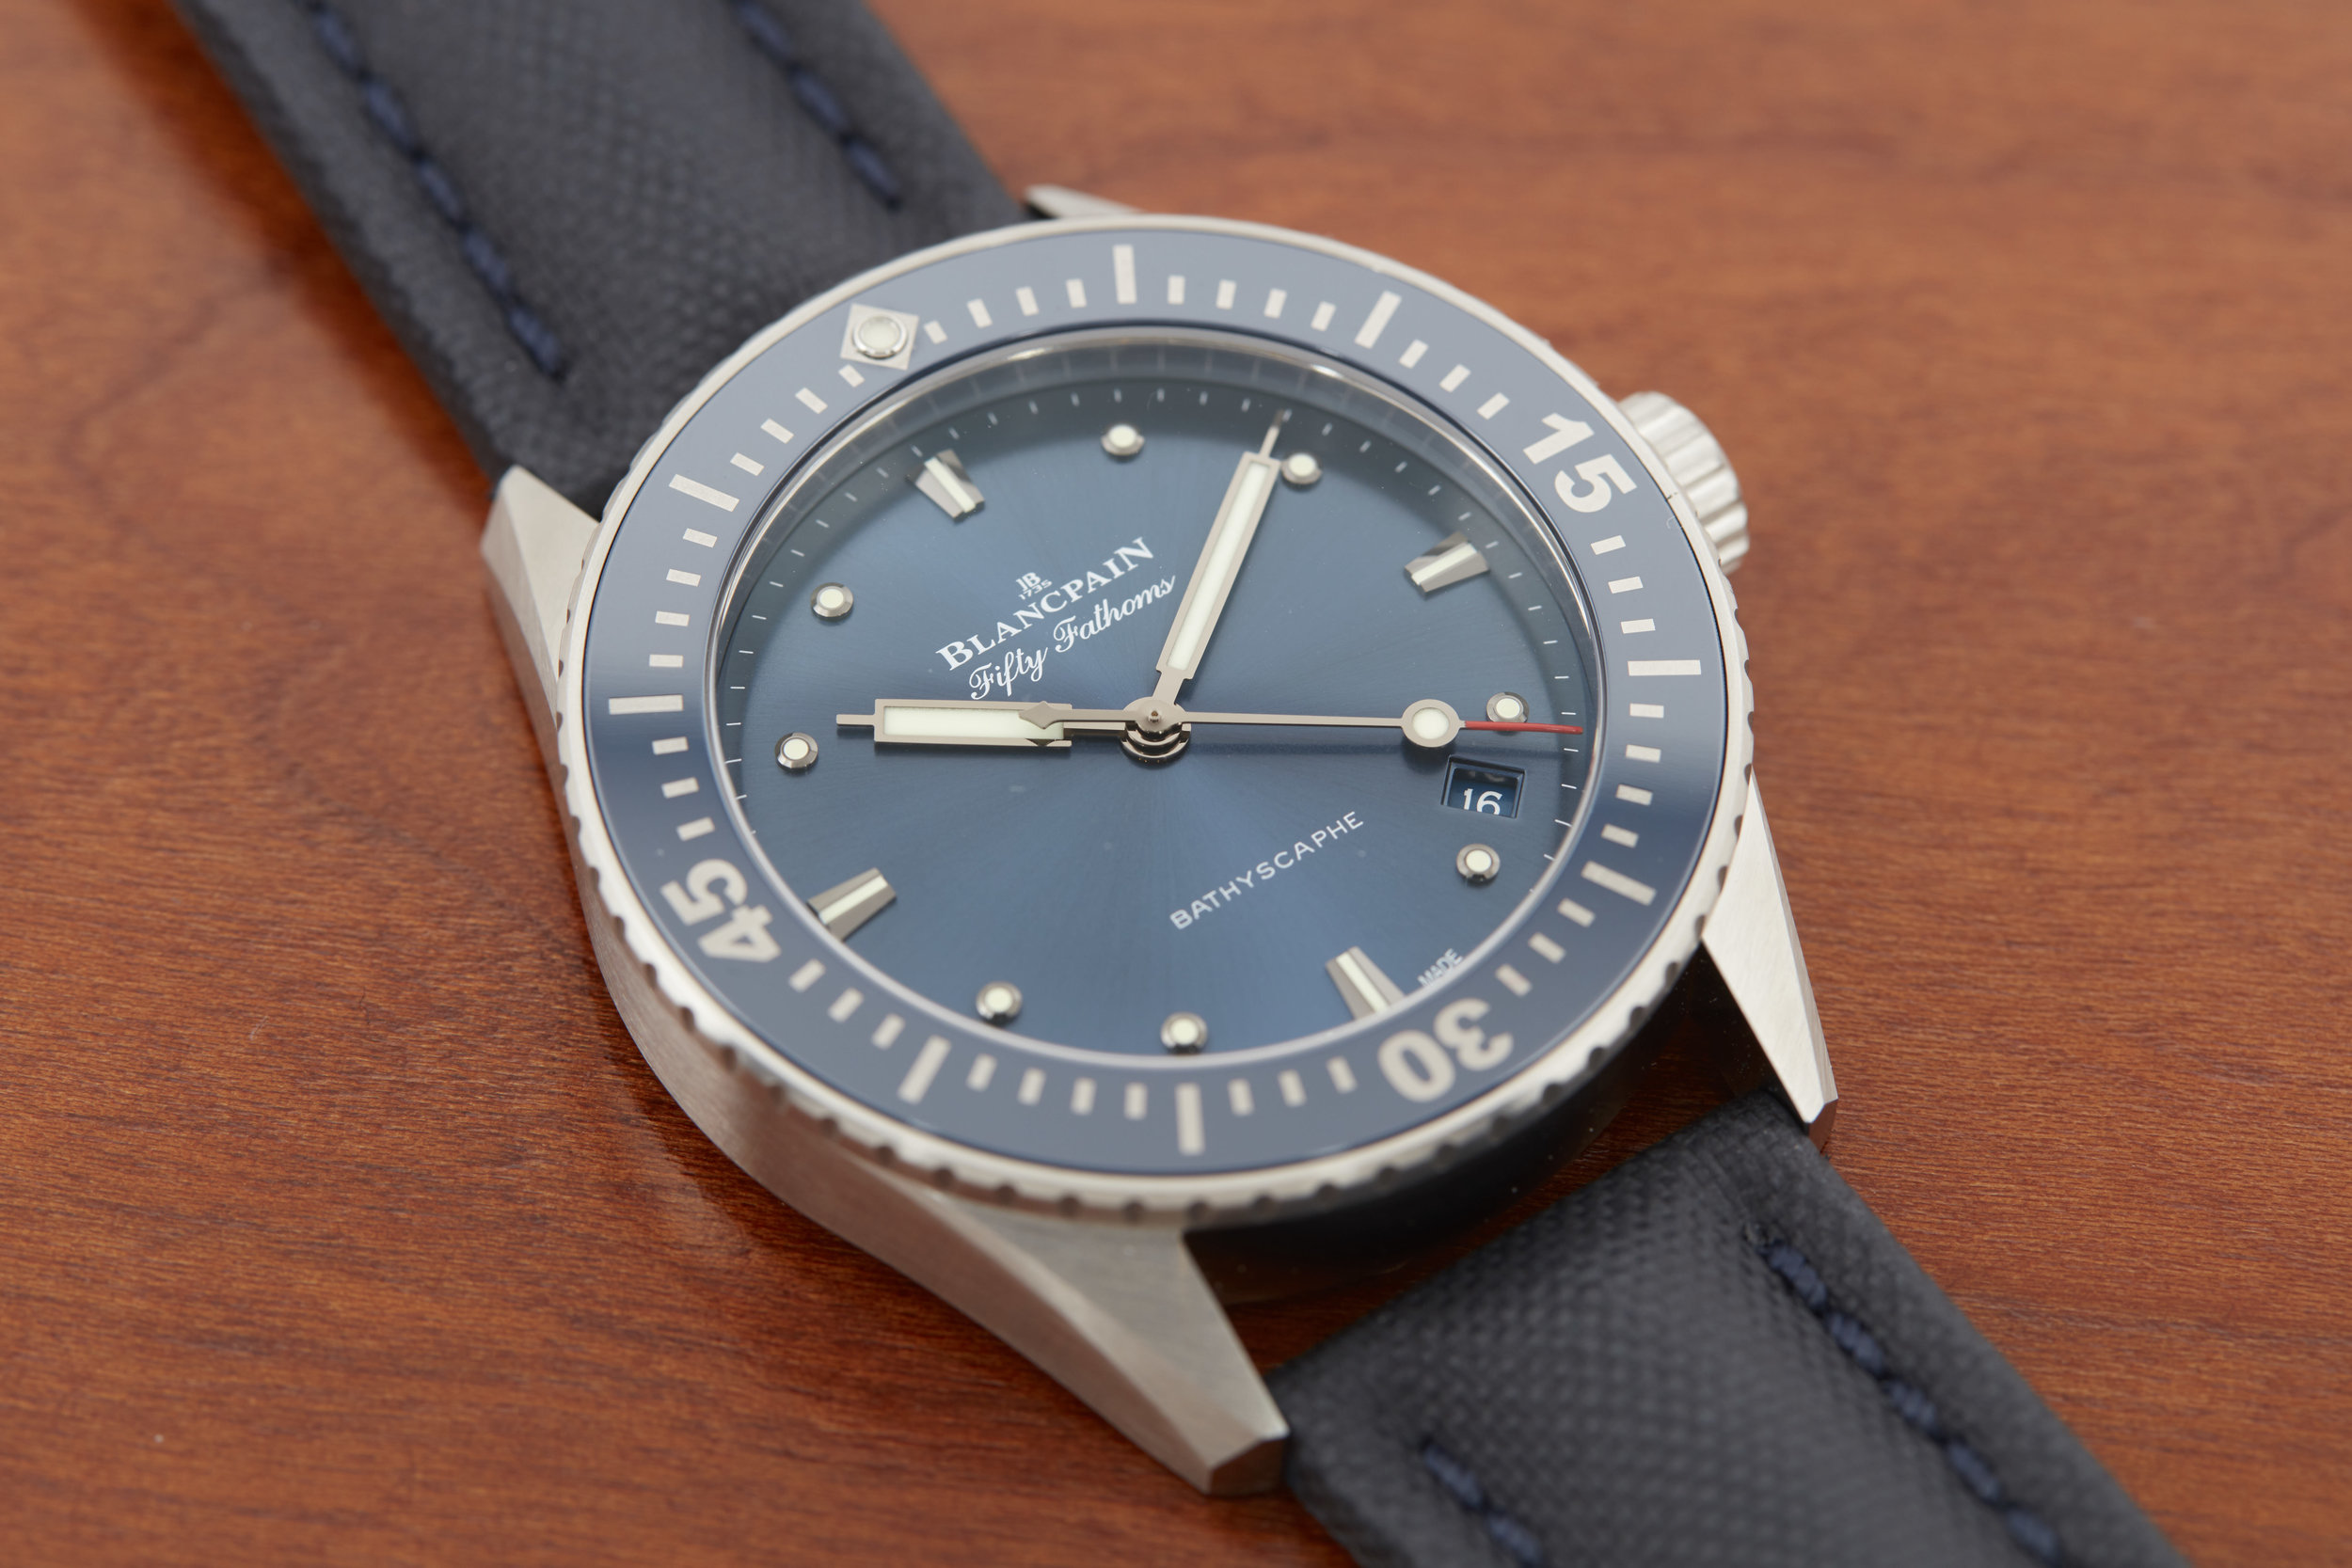 Blancpain Fifty Fathoms Bathyscaphe 38mm